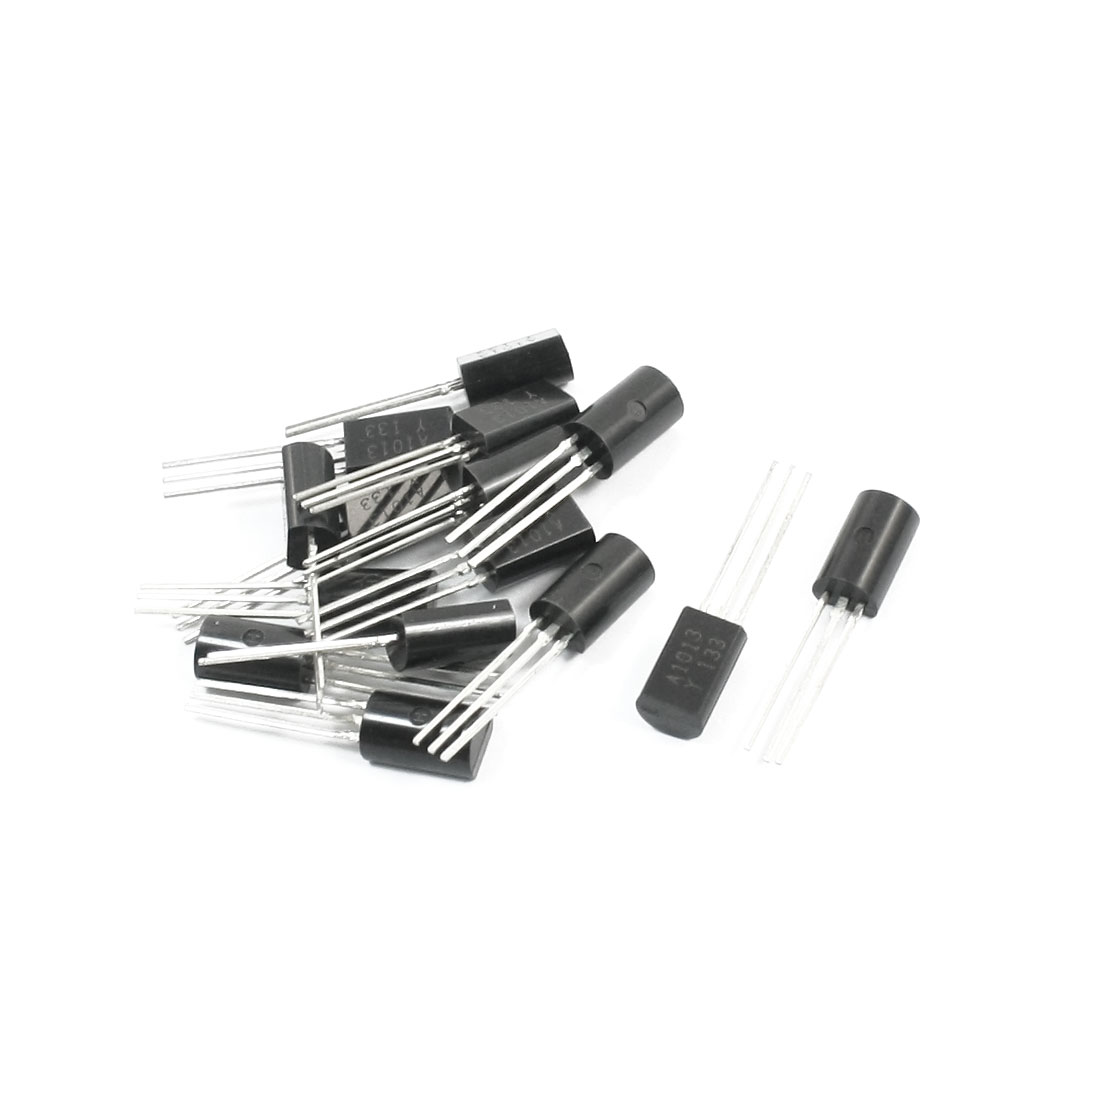 2SA1013Y TO-92L PNP Electric Component 3 Pins Through Hole PCB Surface Mount General Purpose Power Transistor 160V 0.1A 15Pcs